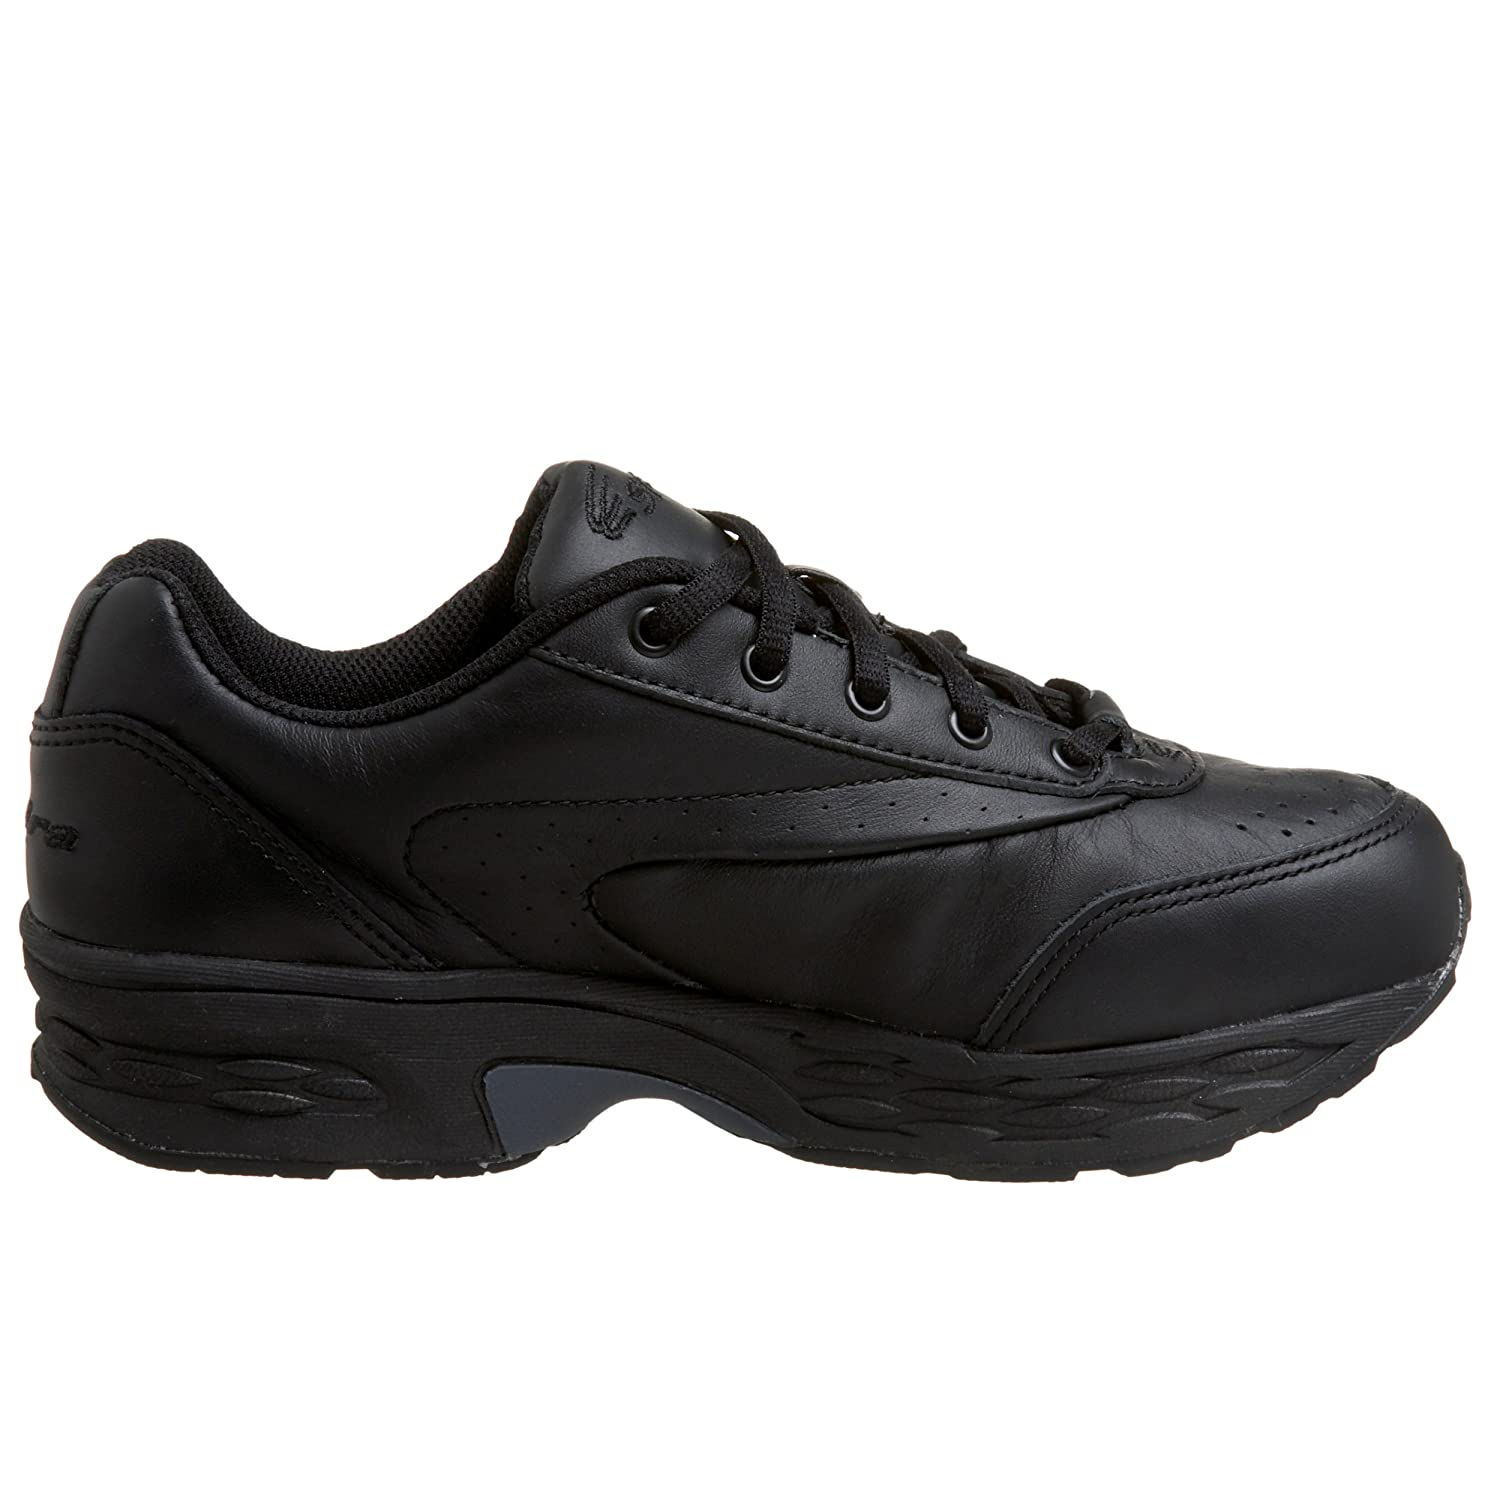 Spira Women's Classic Leather Walking Shoe B000CECLEM 11 B(M) US|Black/Black